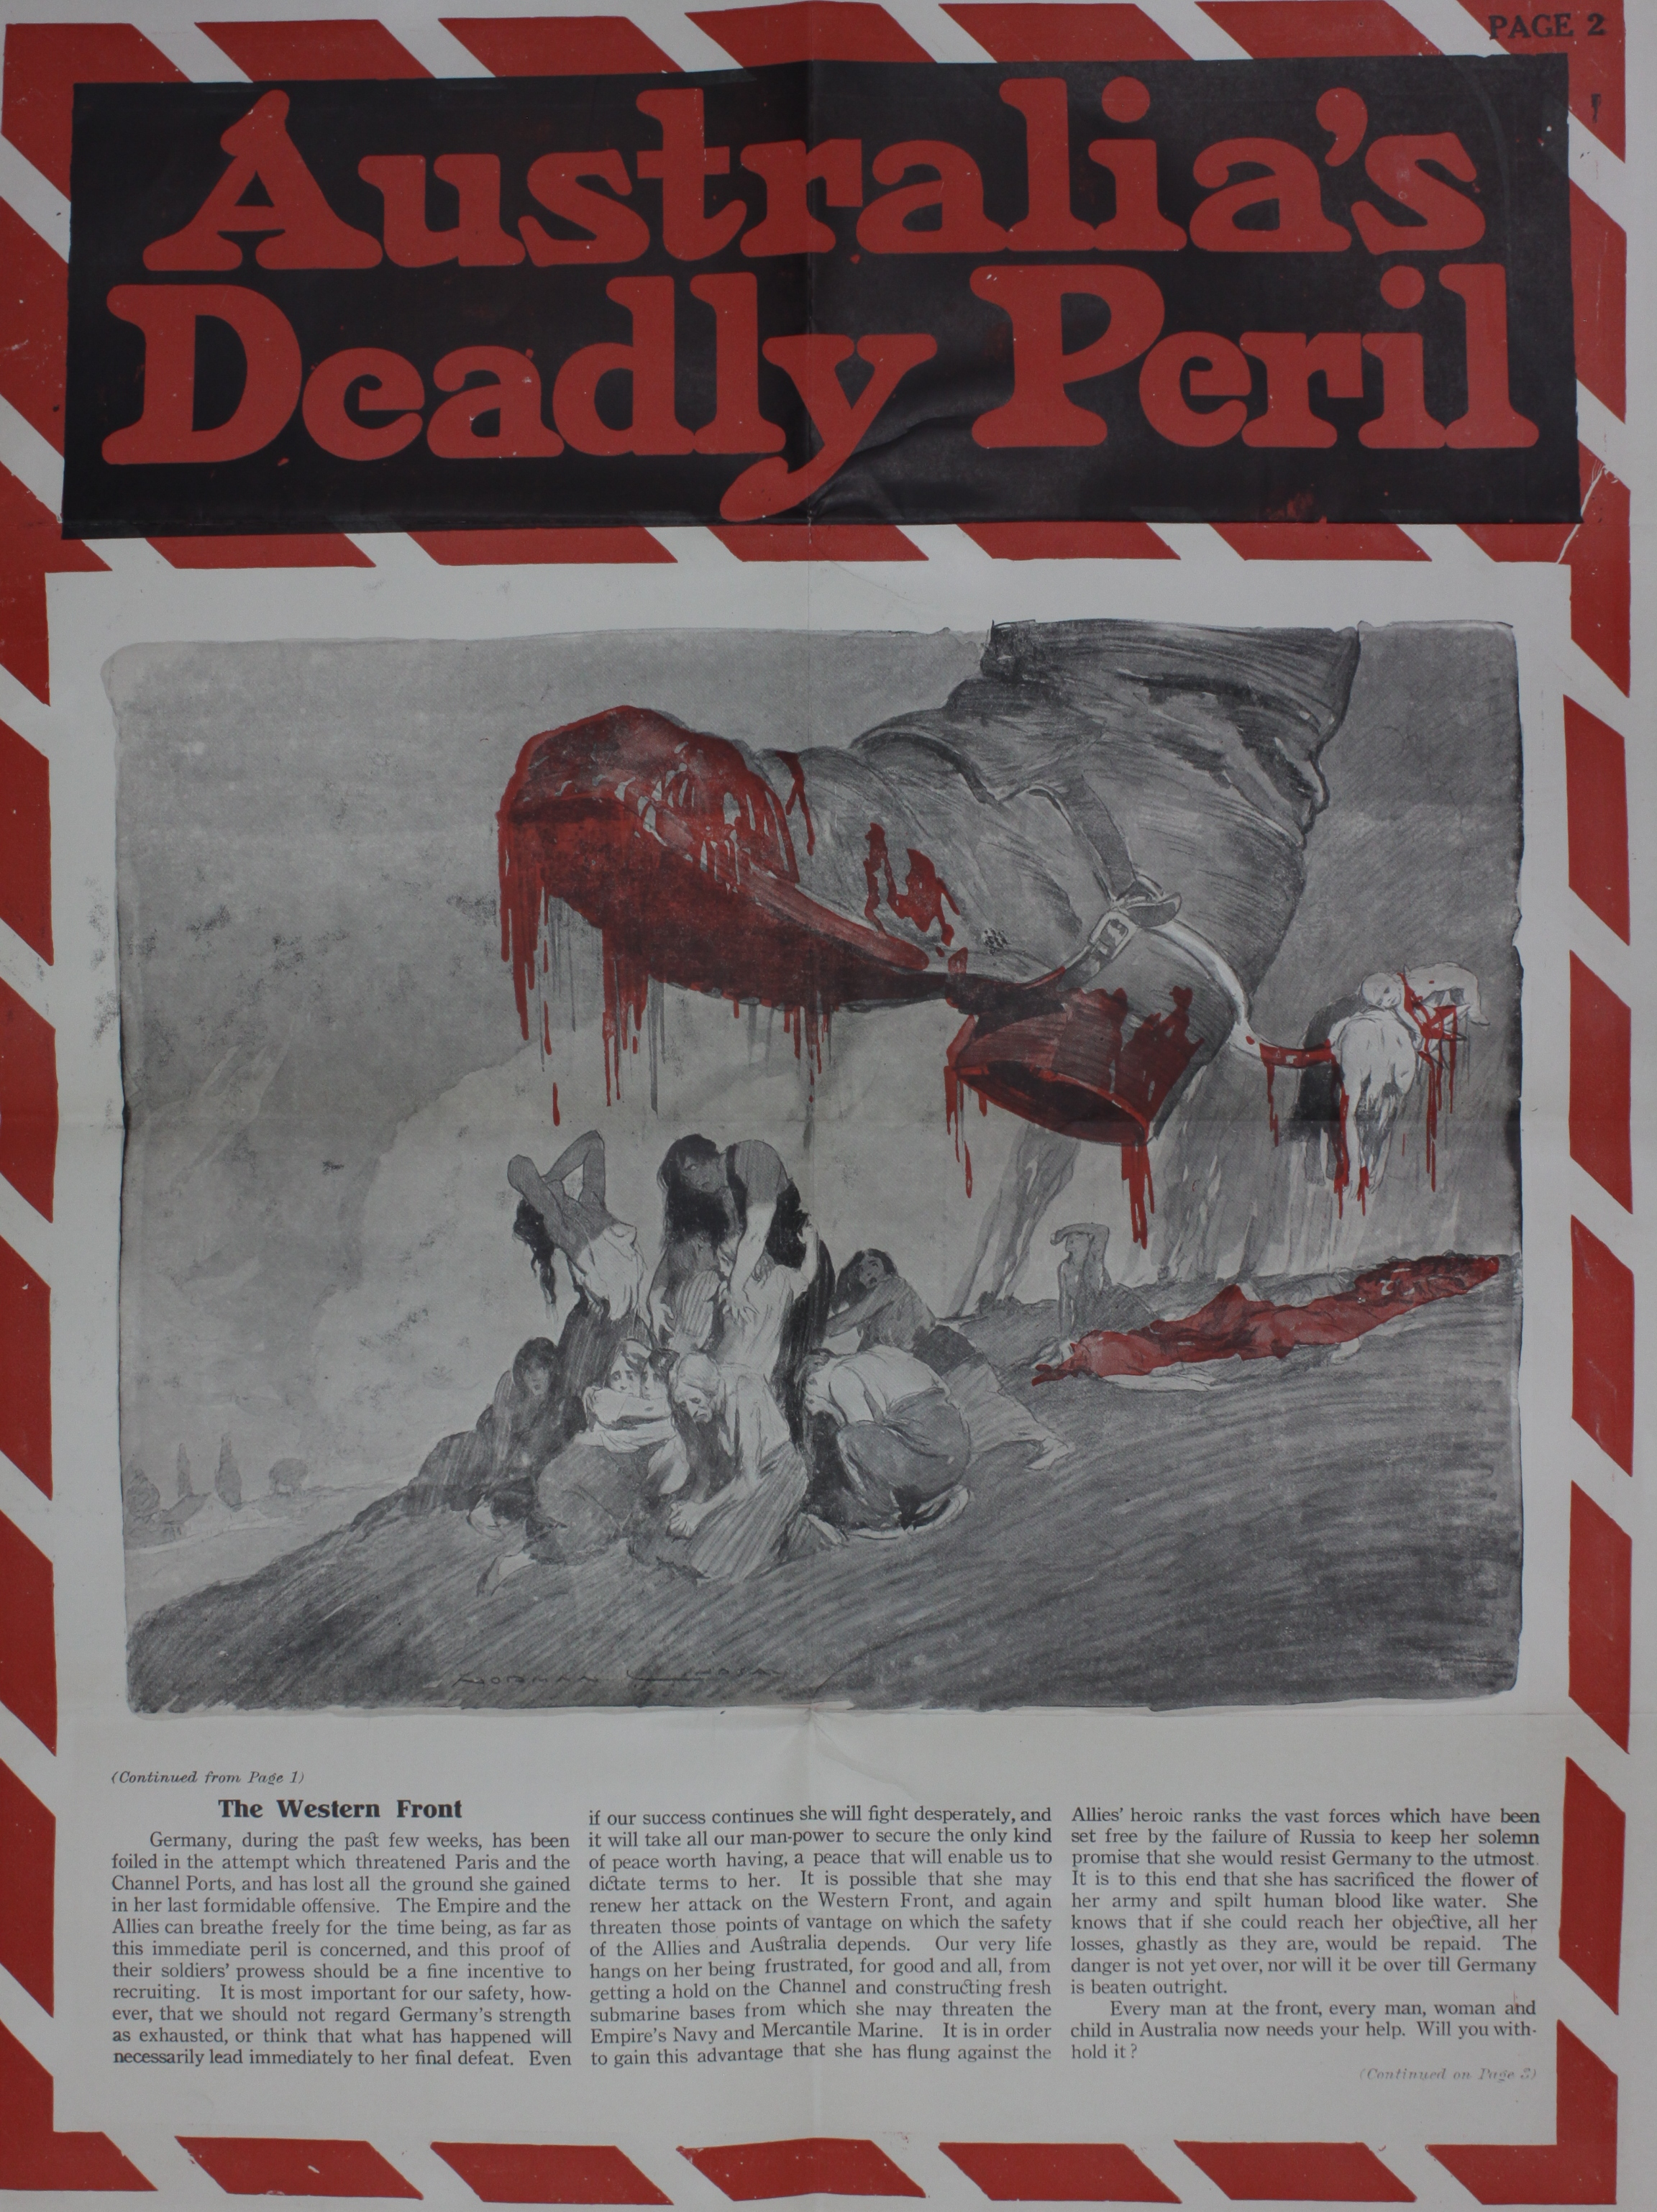 poster of bloody boot